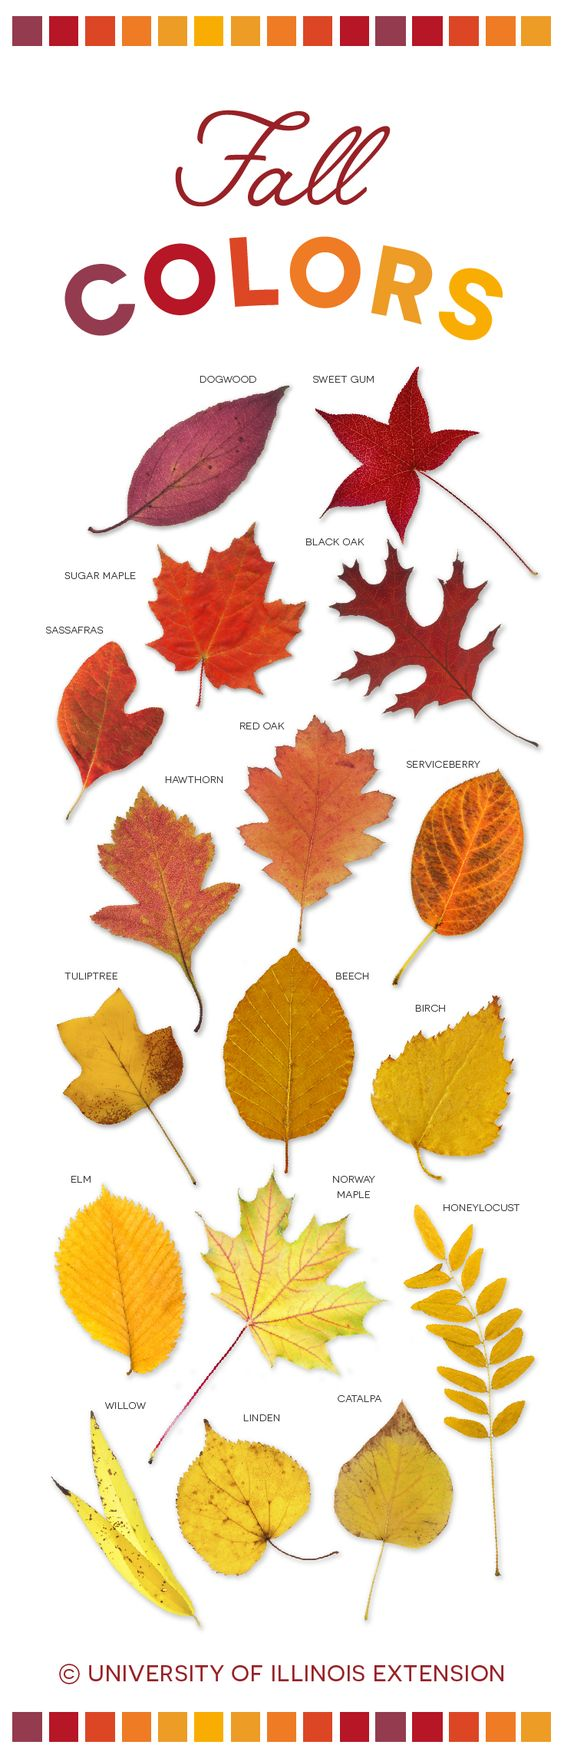 Fall Colors #leaves #autumn #beautiful #infographic